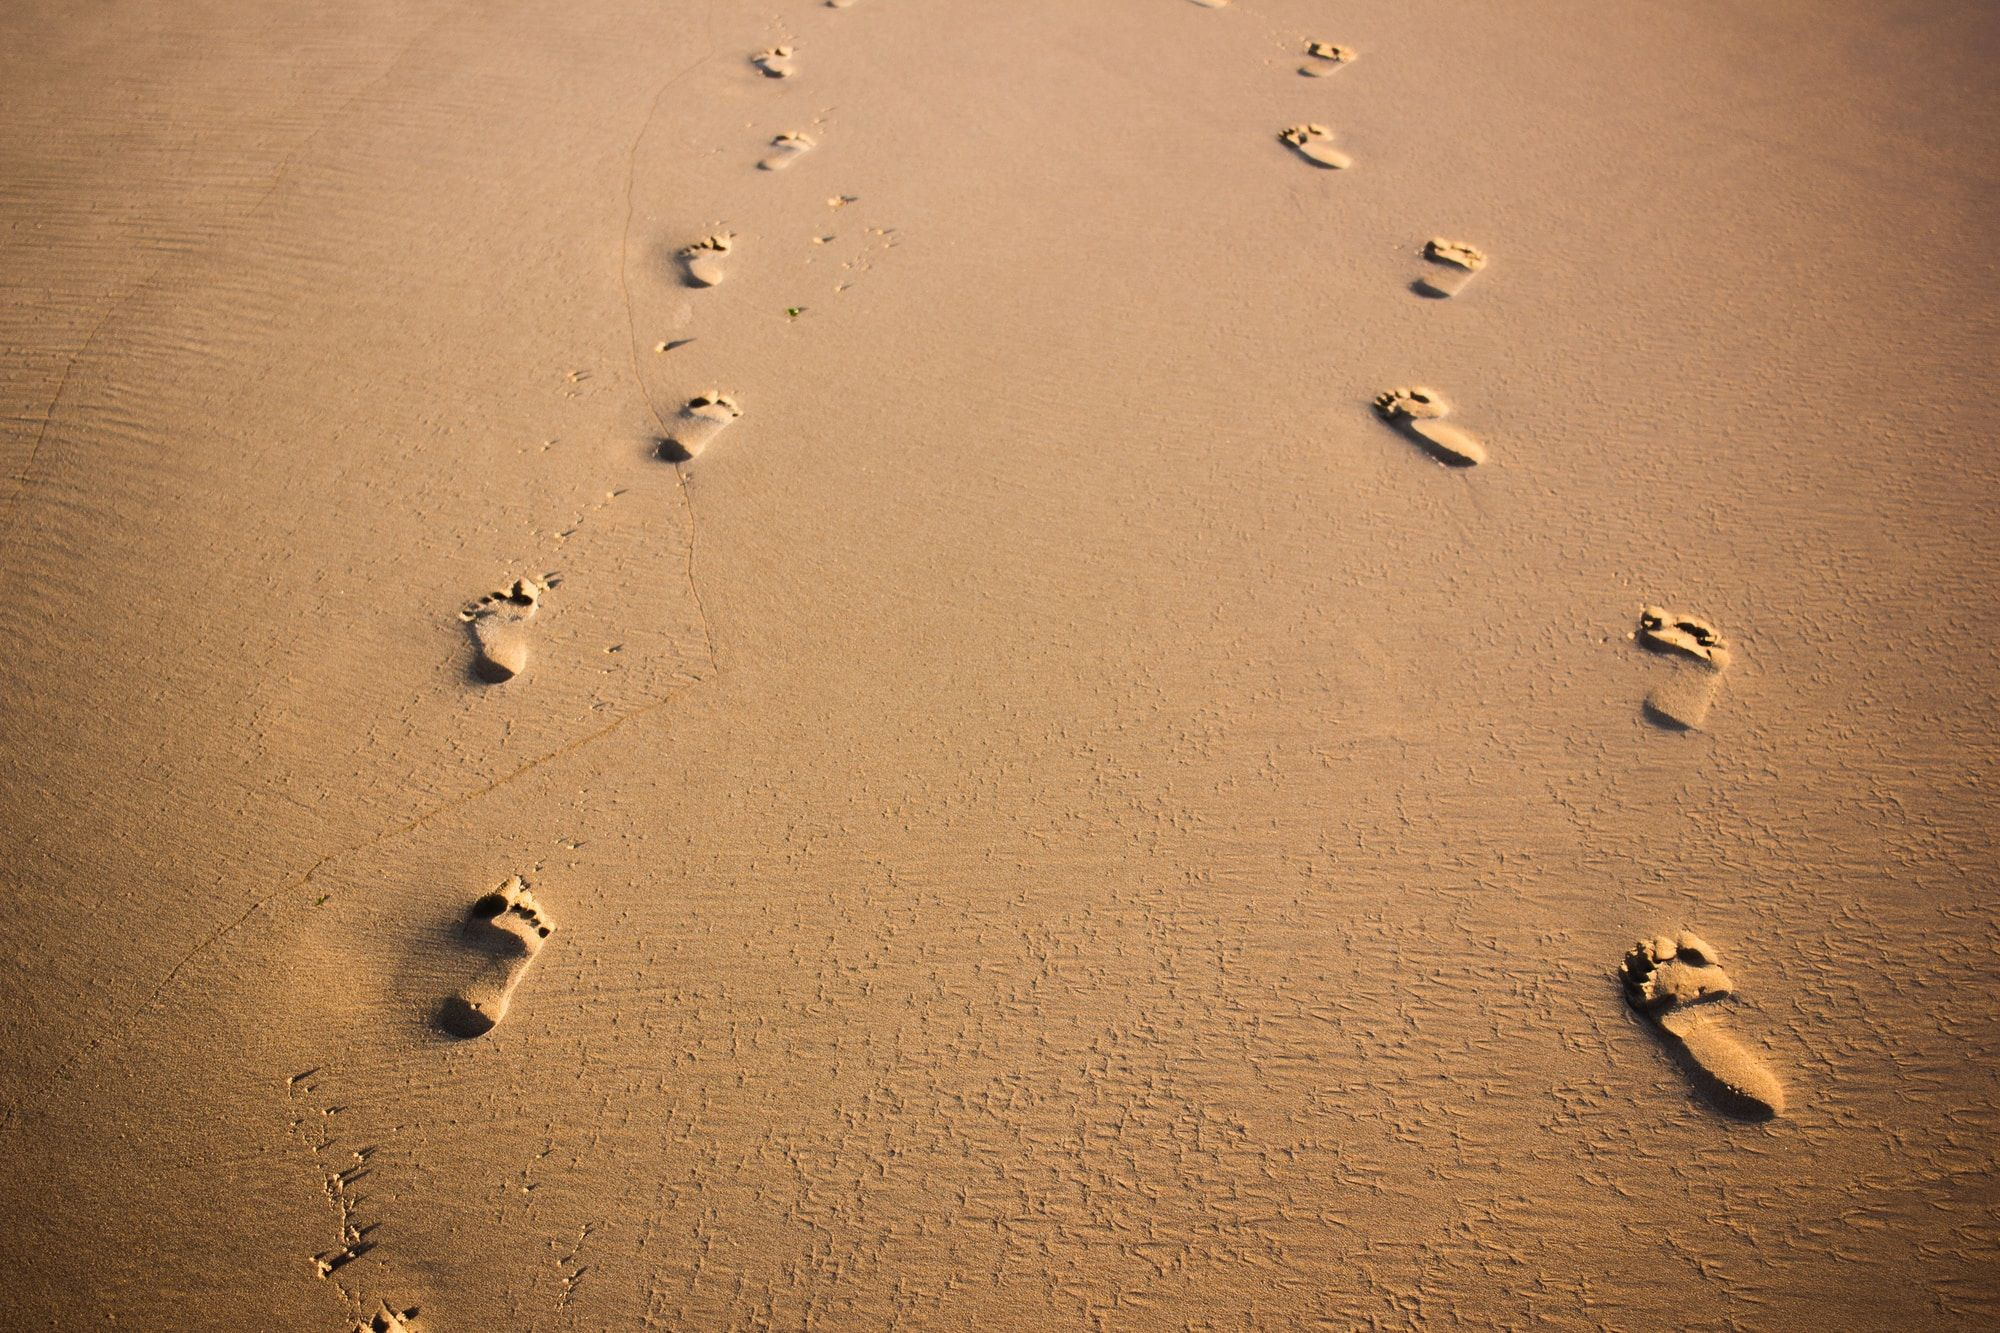 Two sets of footprints walking side by side in sand.